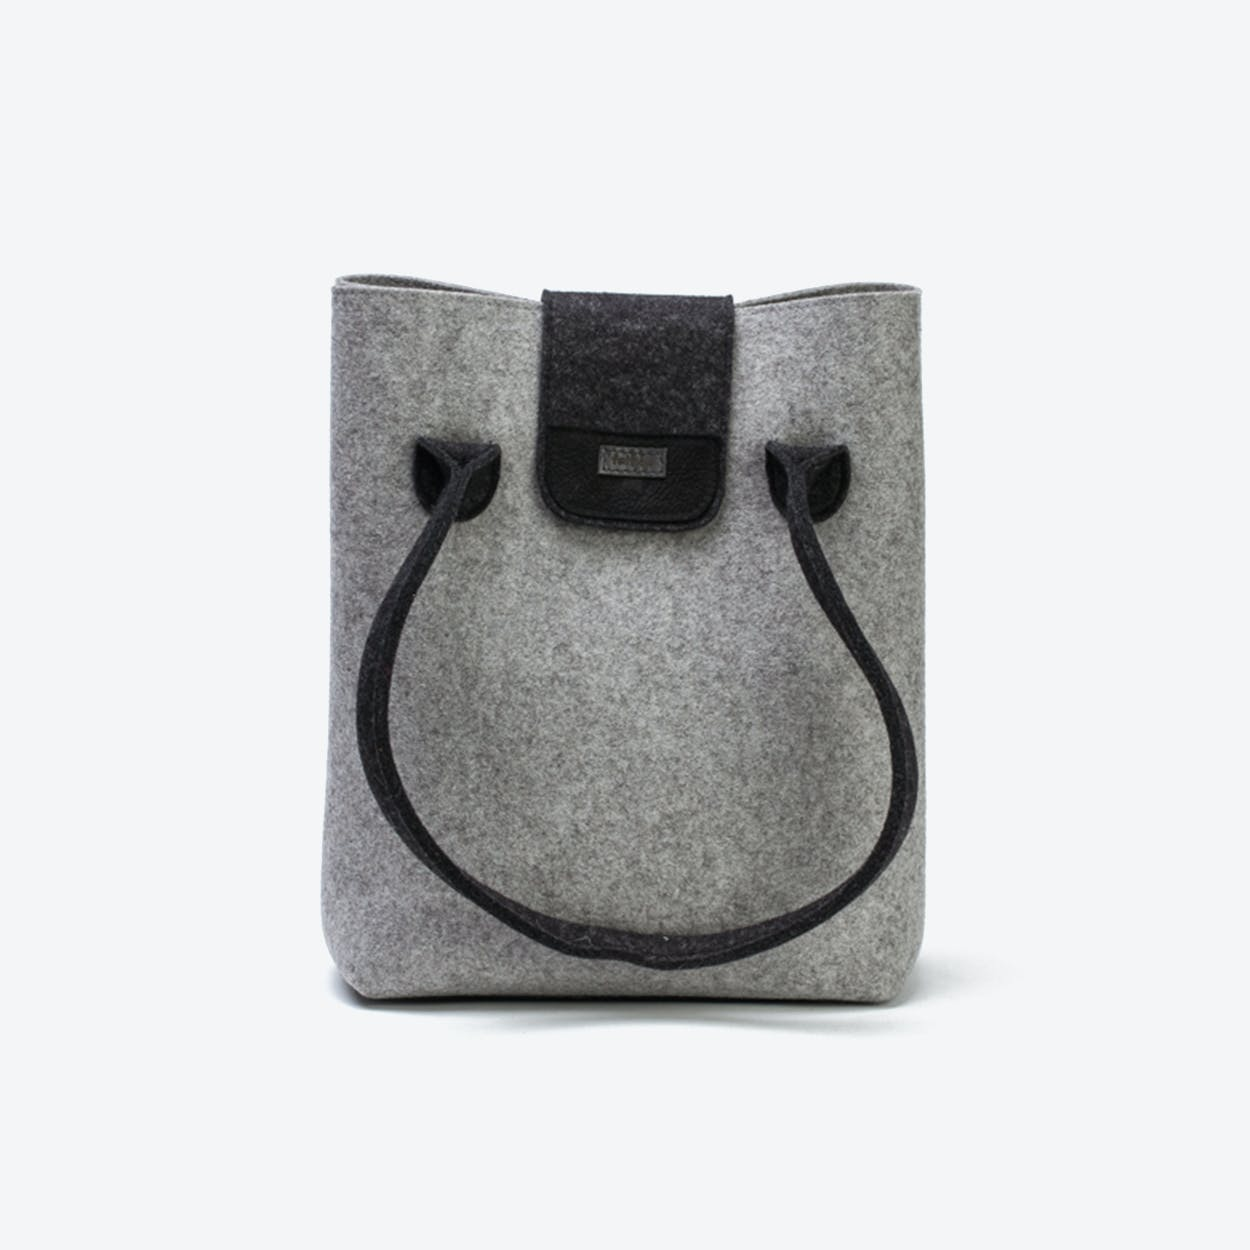 Practical Bag in Light Mottled/Anthracite